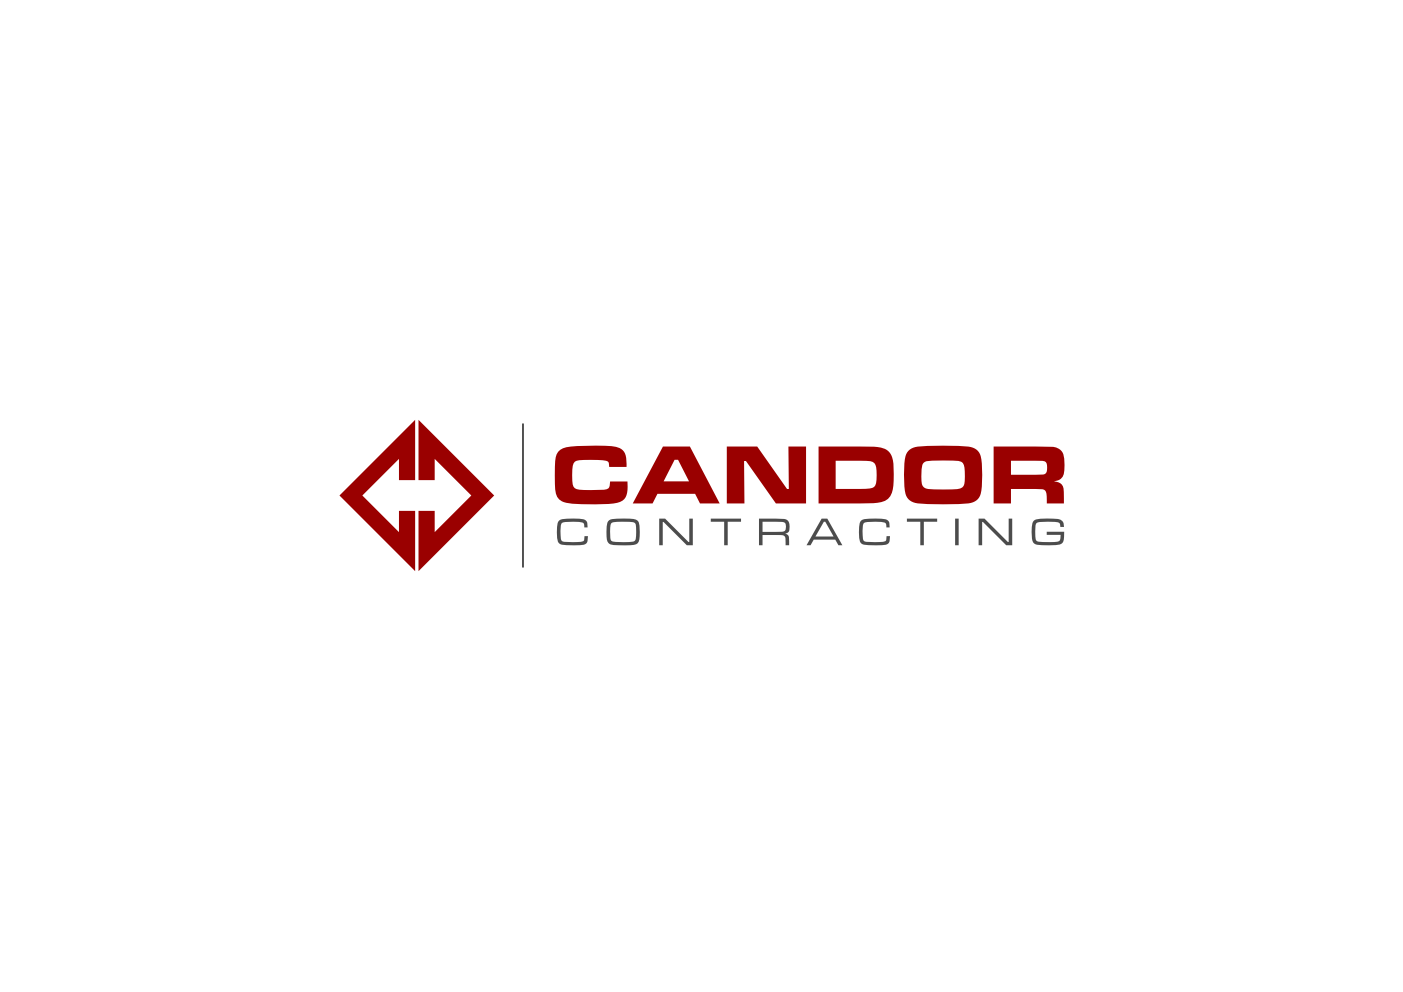 Logo Design by Ekarini Puspitasari - Entry No. 8 in the Logo Design Contest Unique Logo Design Wanted for Candor Contracting.